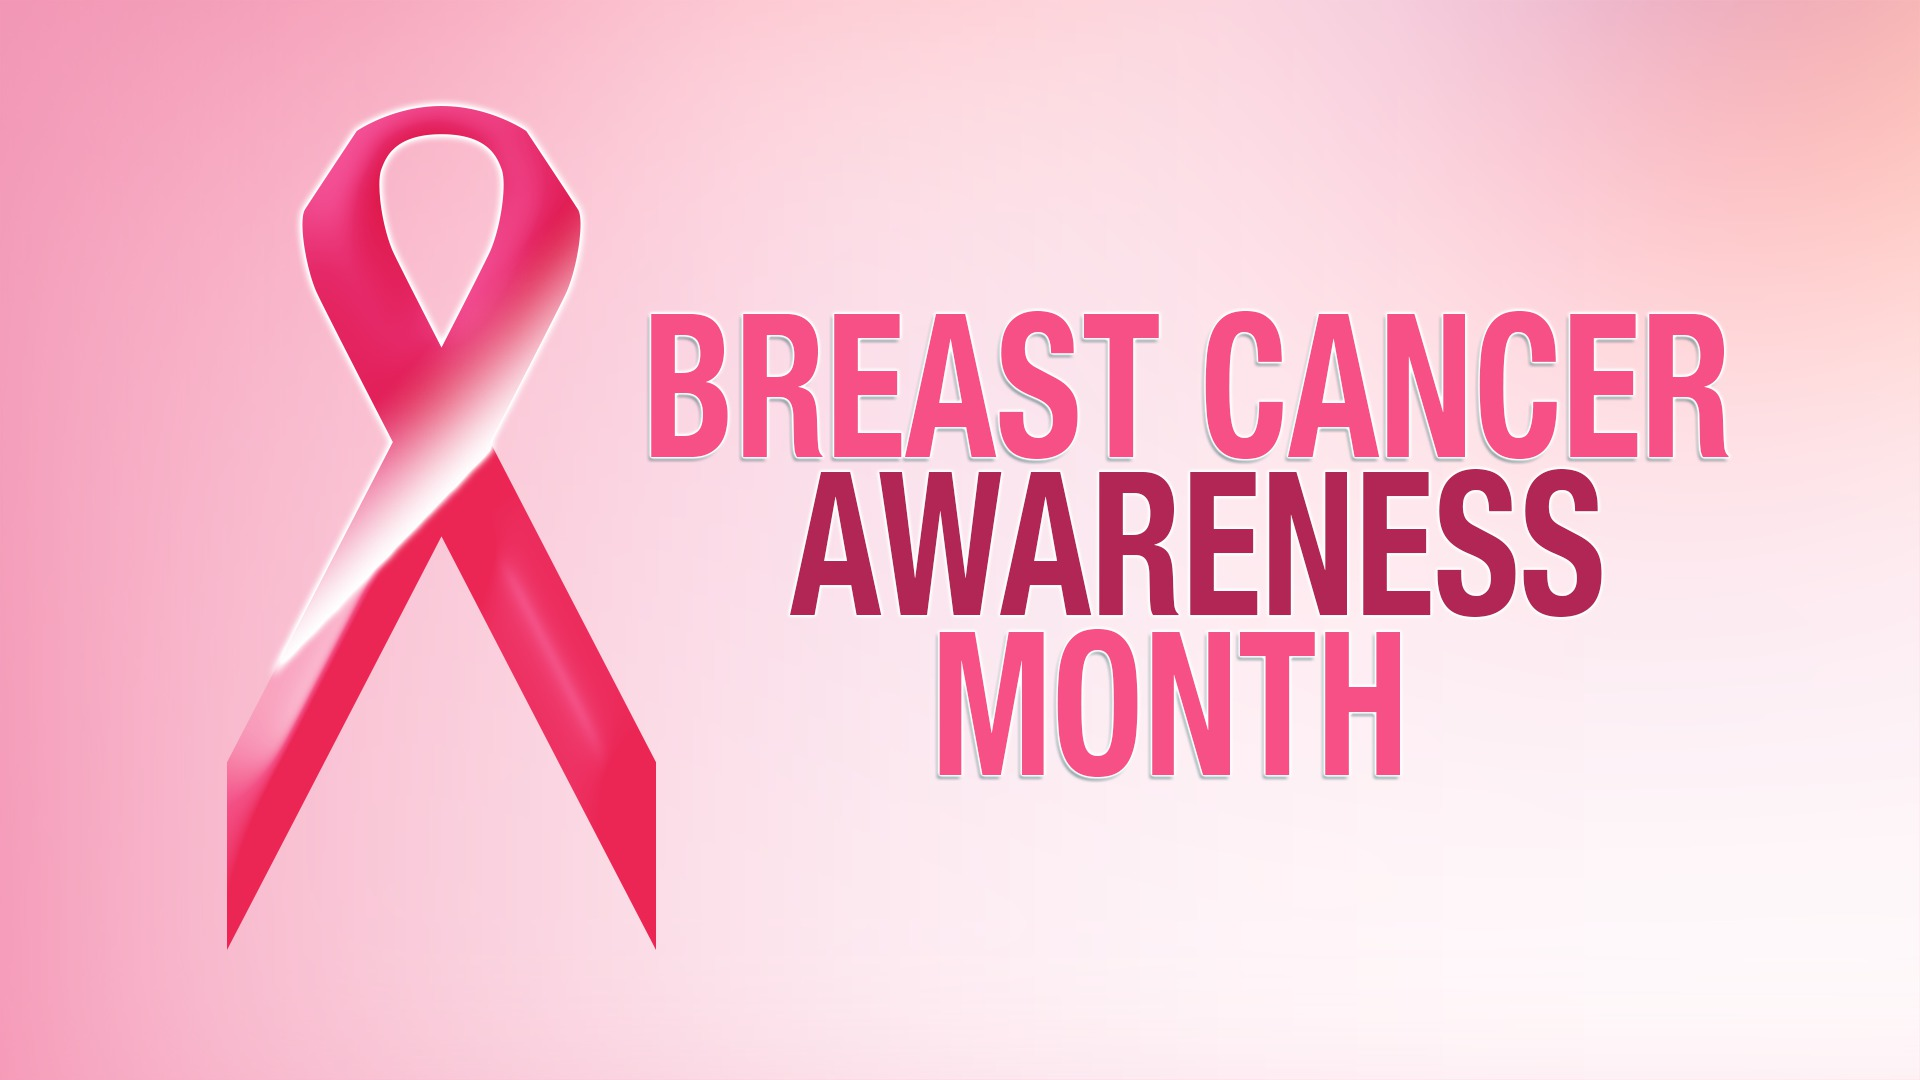 THINK PINK: Doctors saw drop in women getting mammogram screening due to pandemic; trend changing